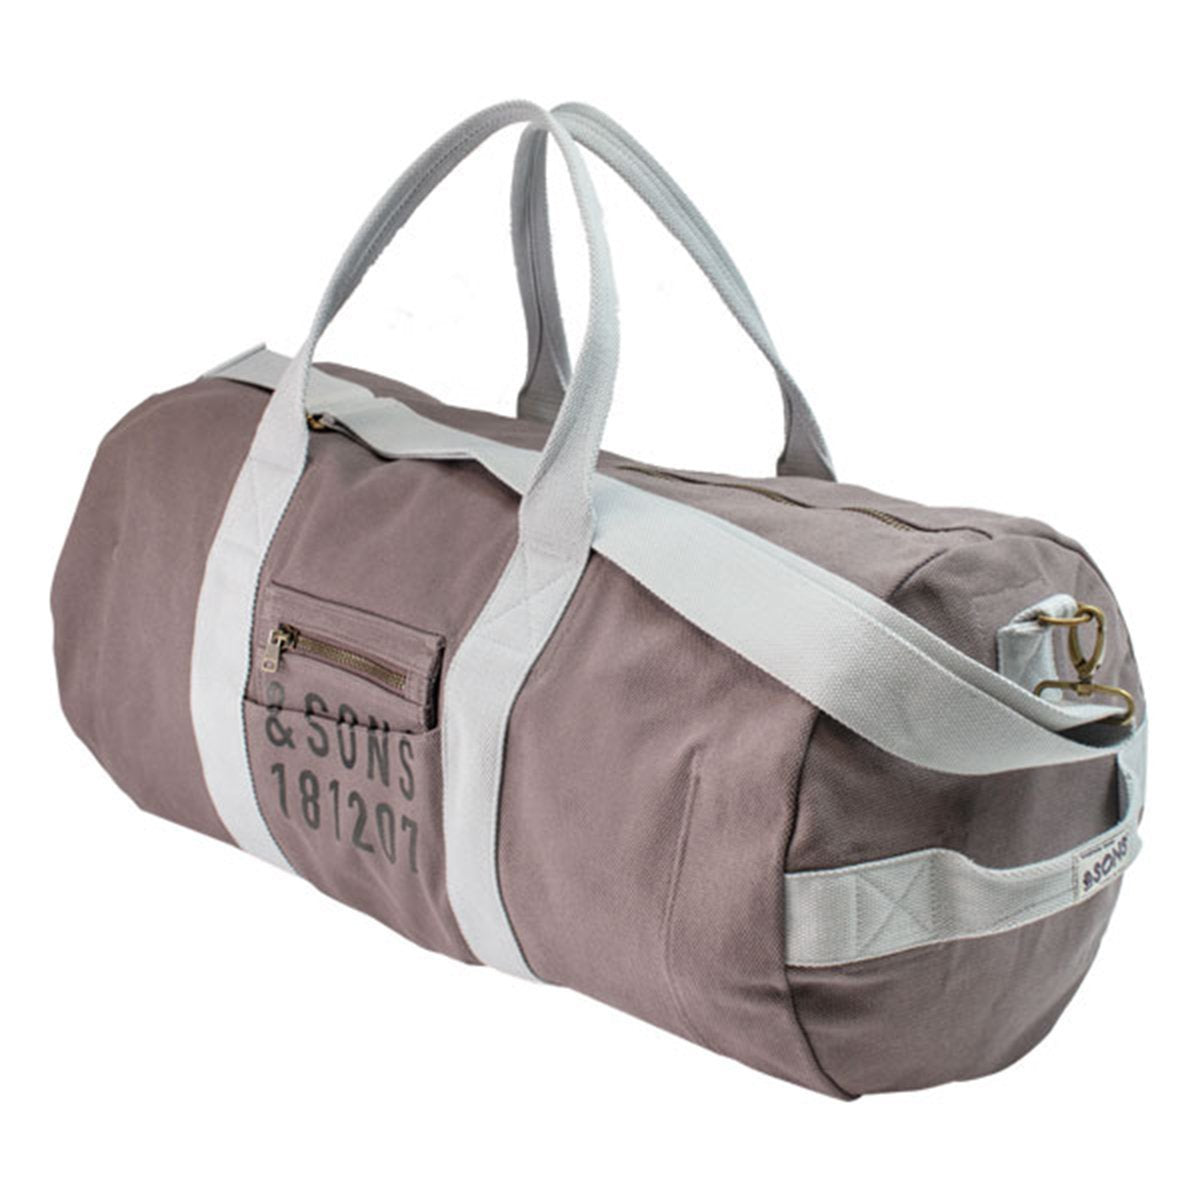 Great Escape Bag